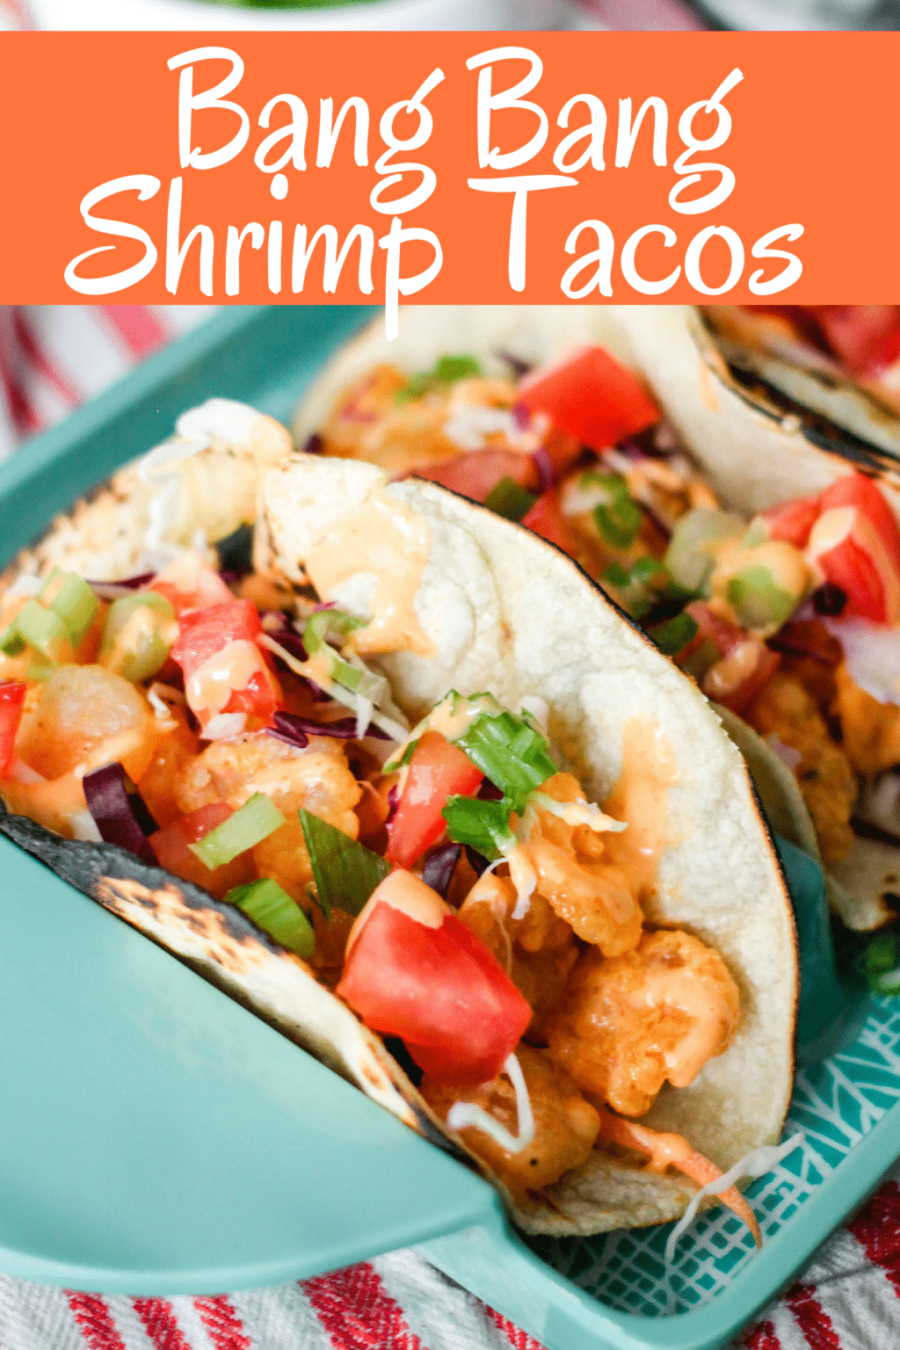 Bonefish Grill's Bang Bang Shrimp Tacos is an easy and delicious recipe that can be made at home. With the signature spicy sauce, and crunchy taco toppings, these will be your favorite Shrimp Tacos ever!